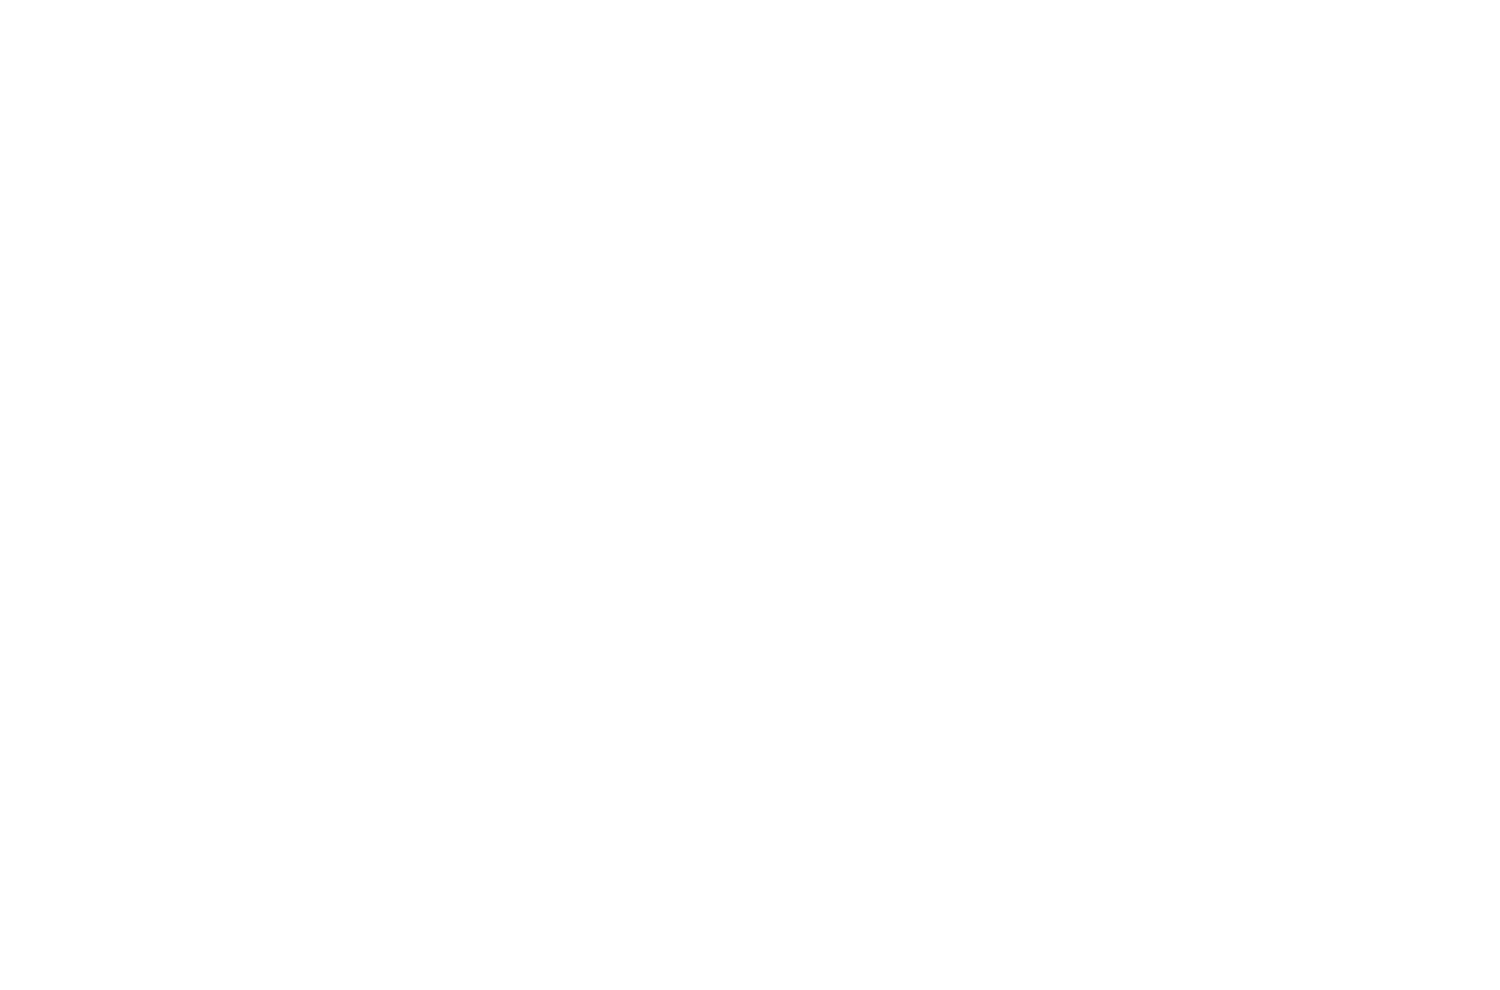 Rye Cafe Bar - Beeston